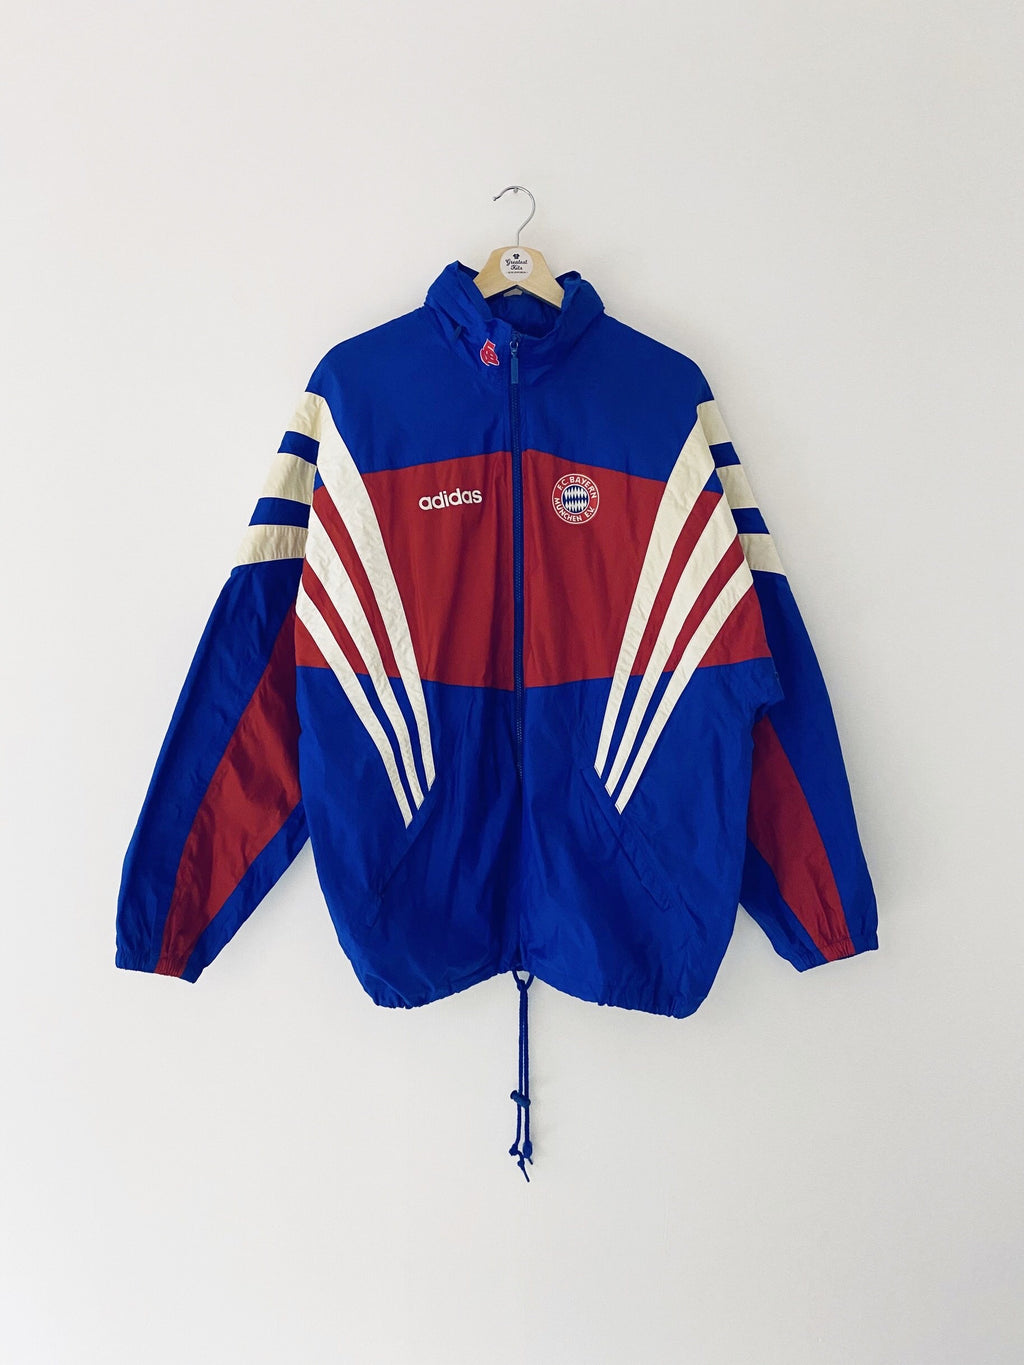 1995/96 Bayern Munich Training Jacket (M/L) 8/10